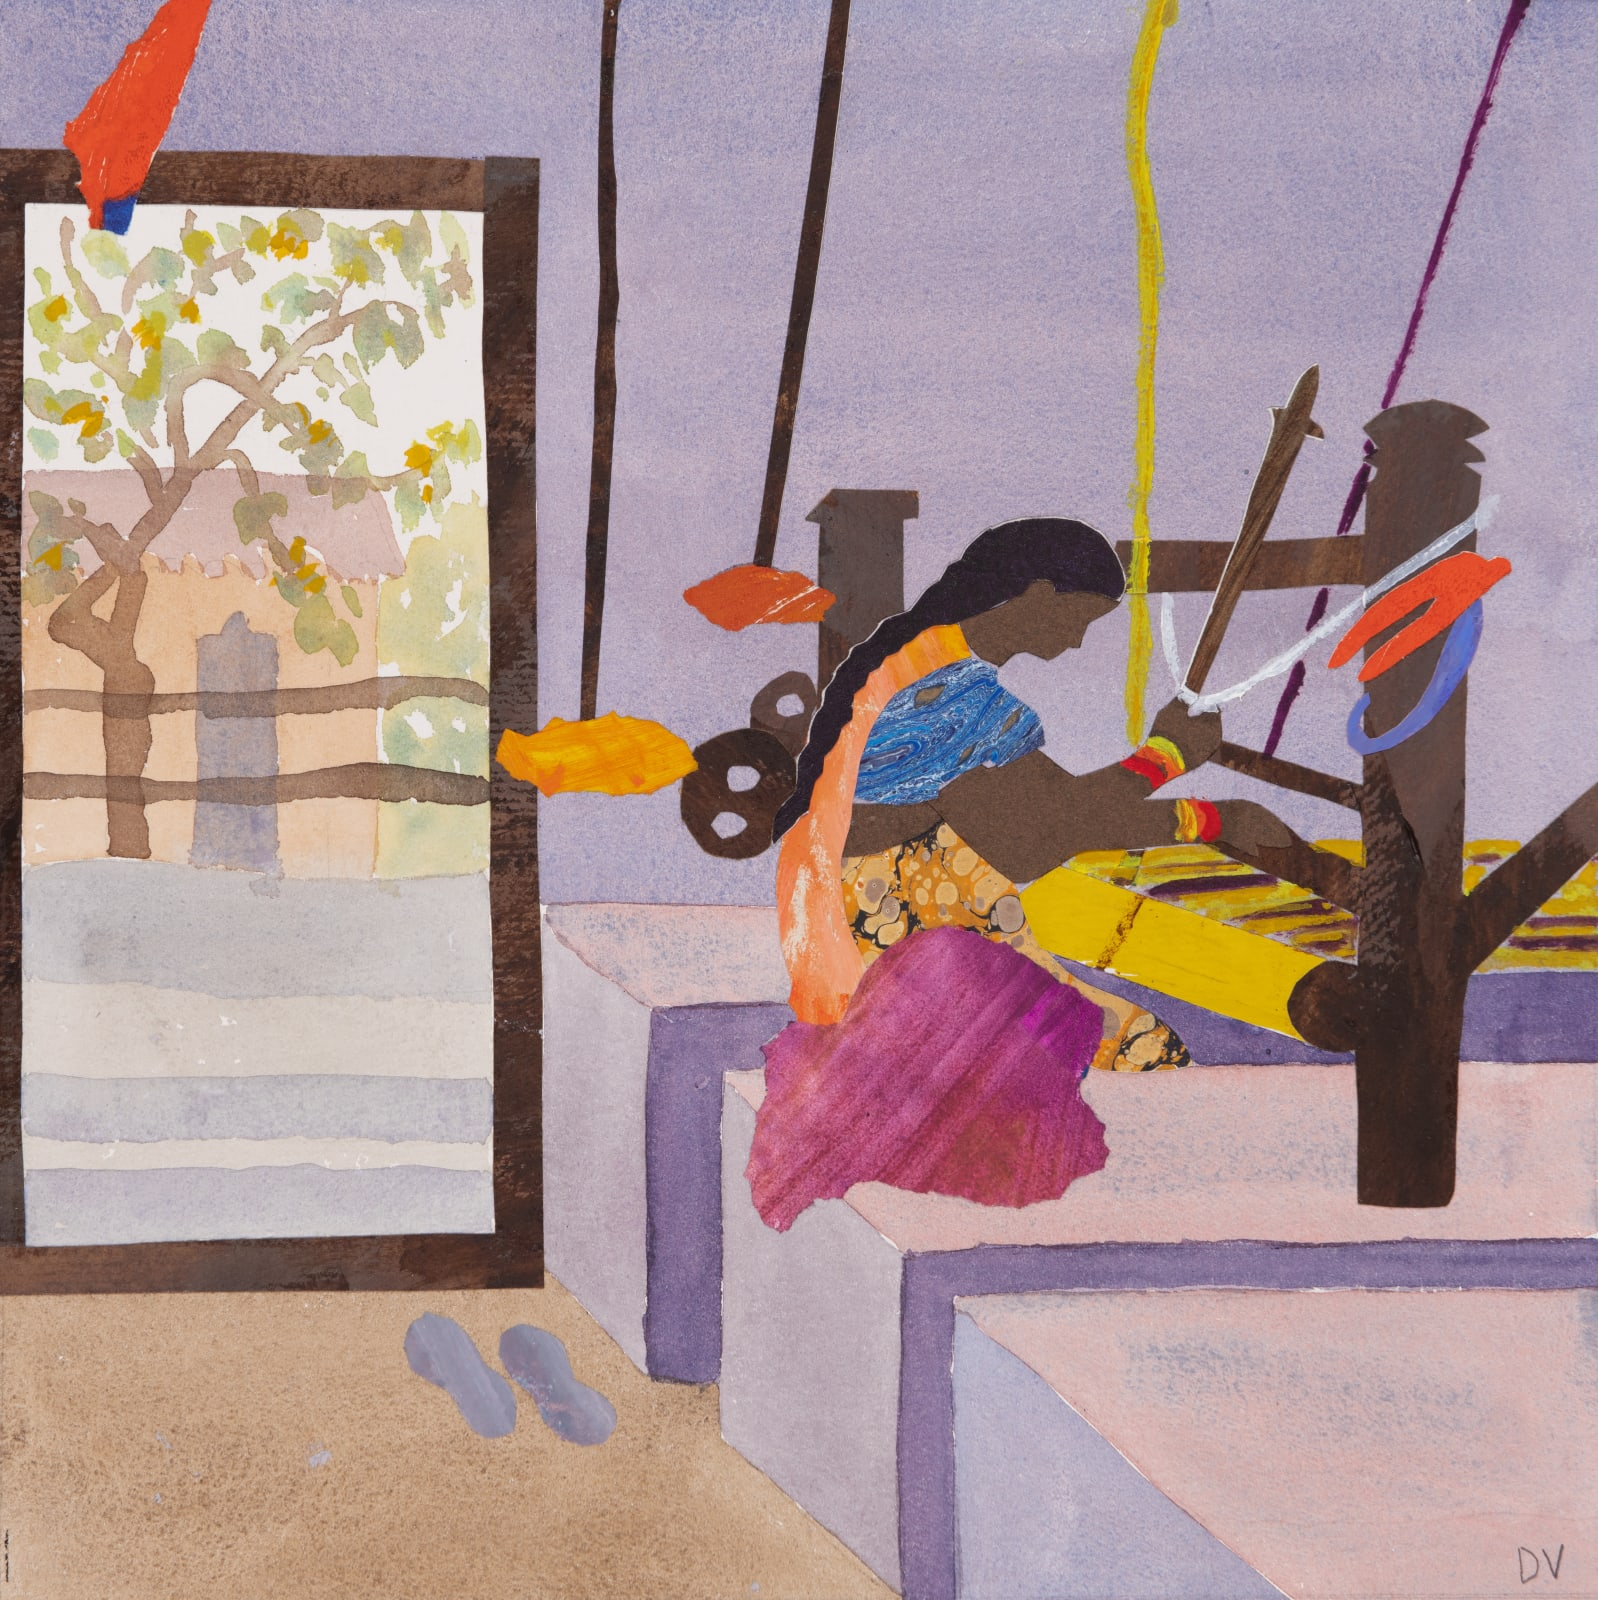 Dione Verulam, At the Loom